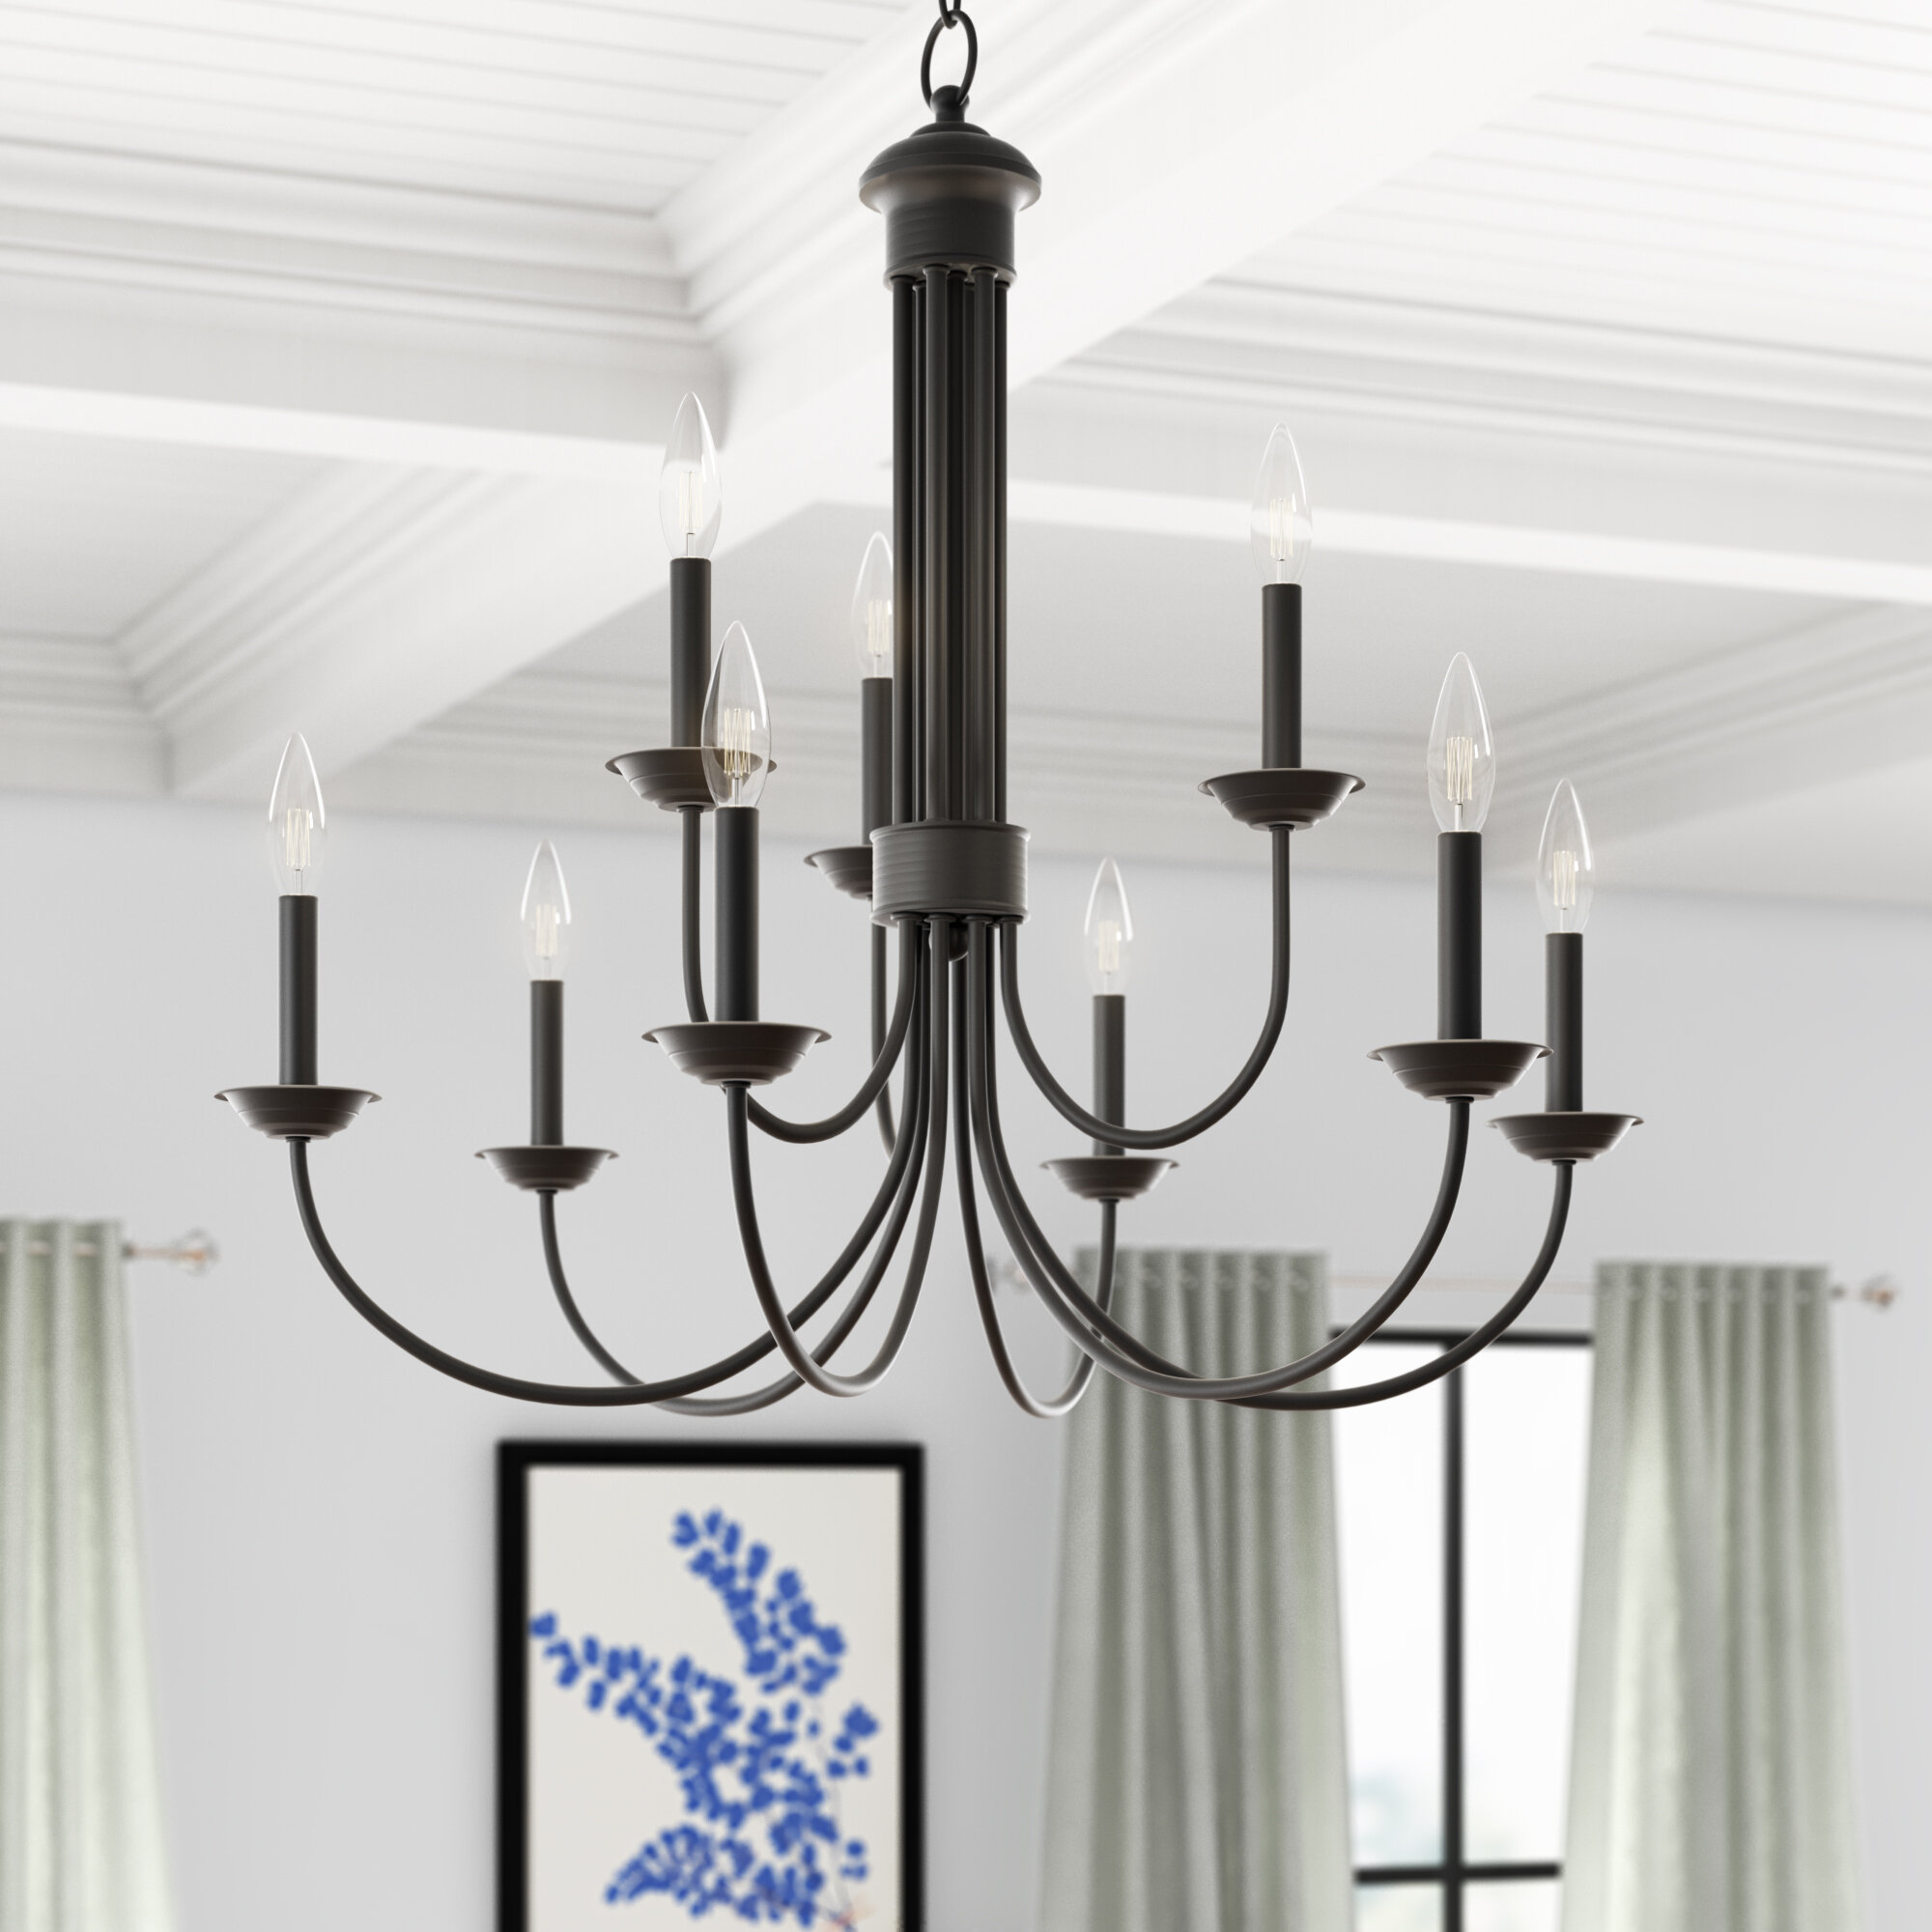 Carruthers 9-Light Candle Style Chandelier for Annuziata 3-Light Unique/statement Chandeliers (Image 6 of 30)